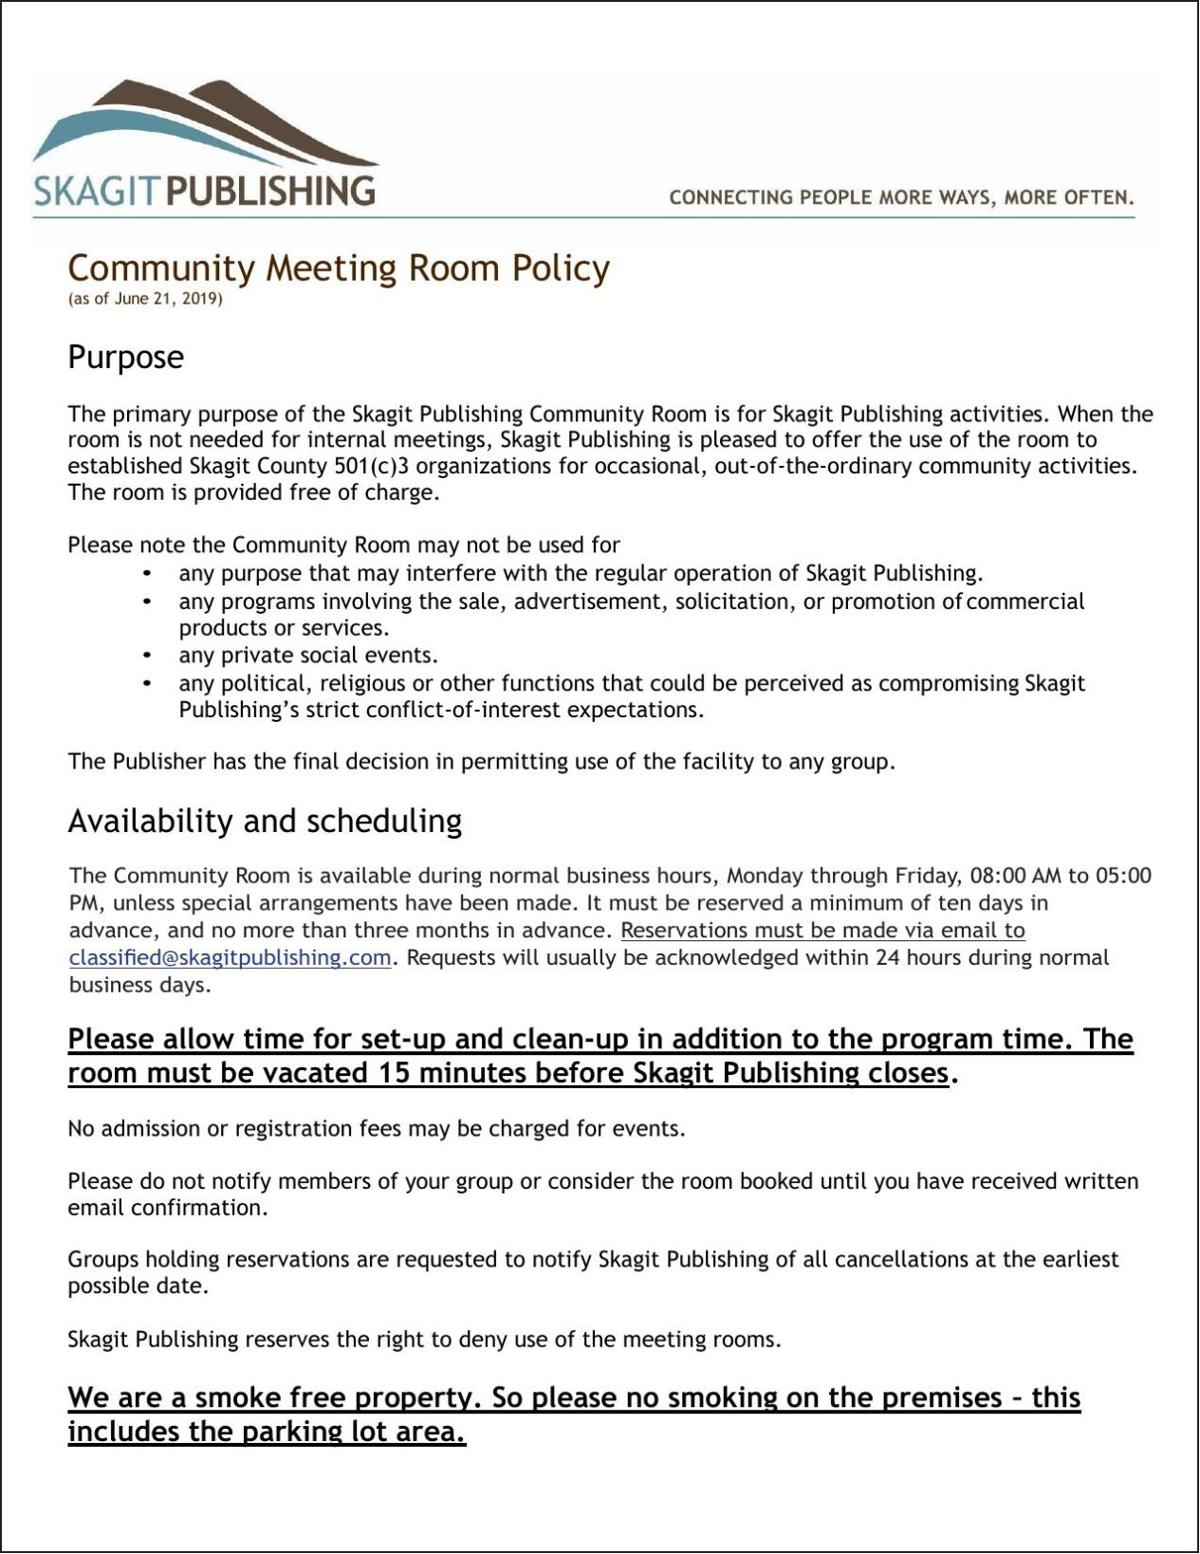 Community Room Policy